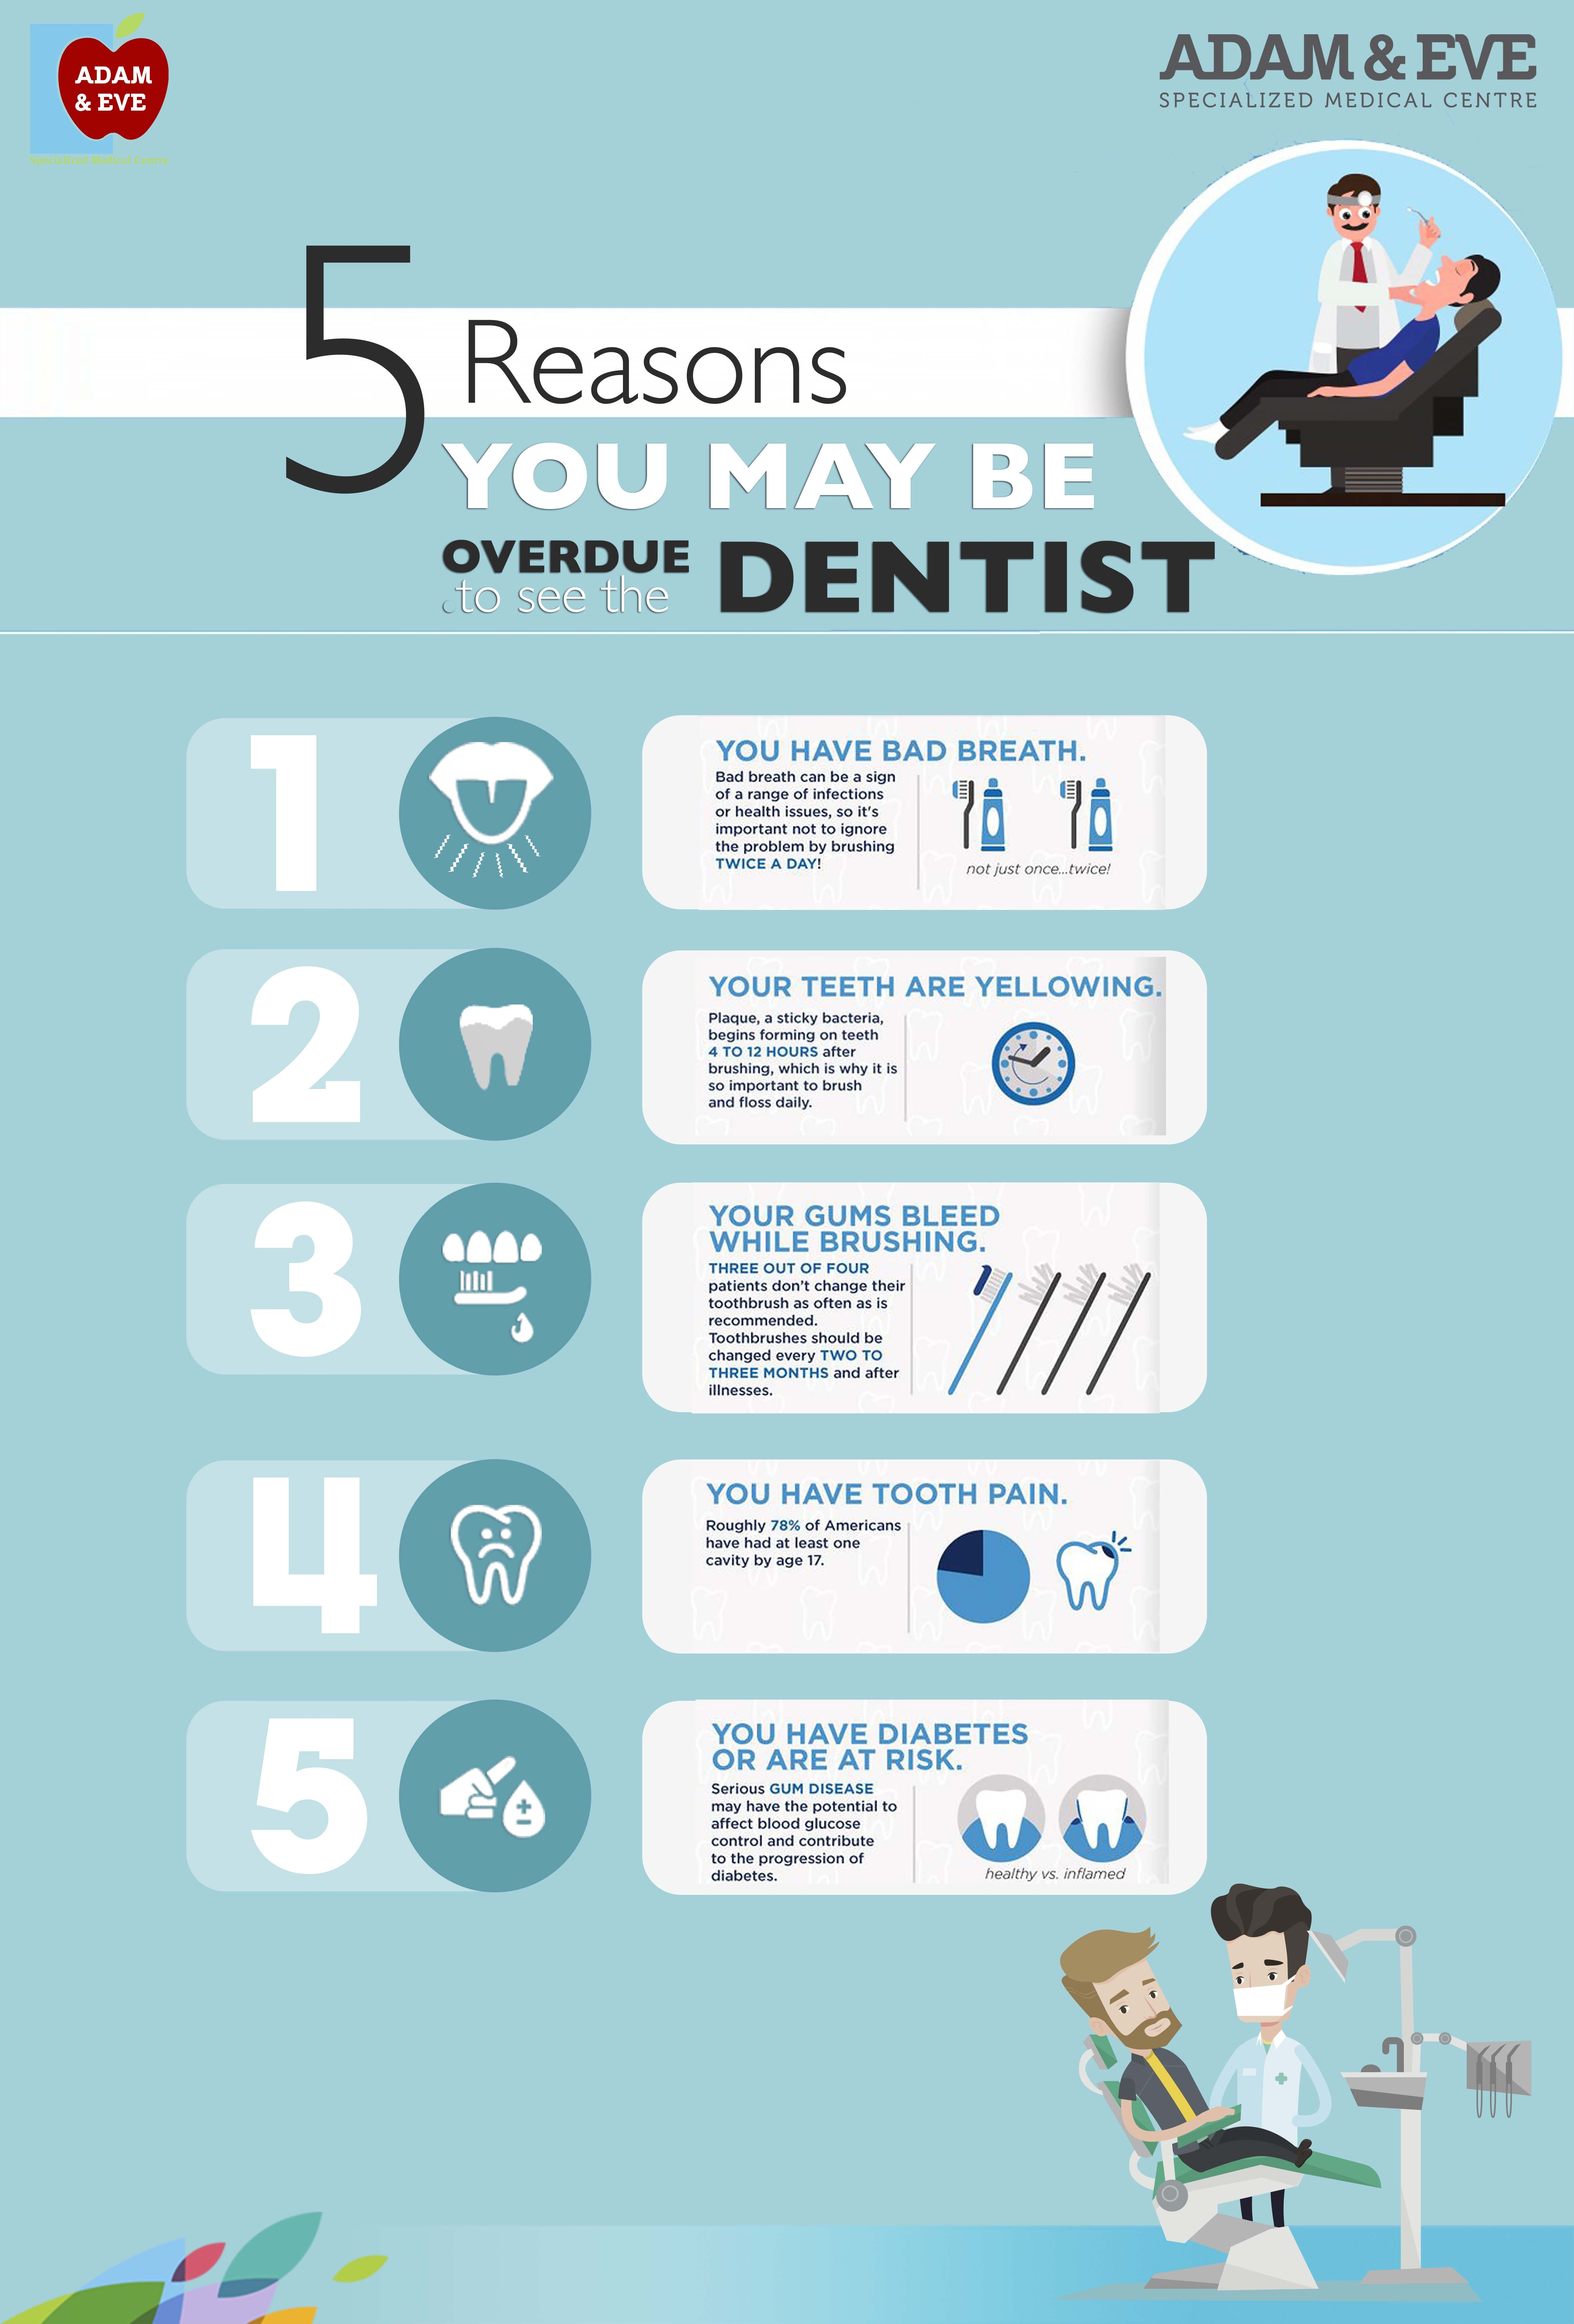 5 reason you may be overdue to see the dentist.